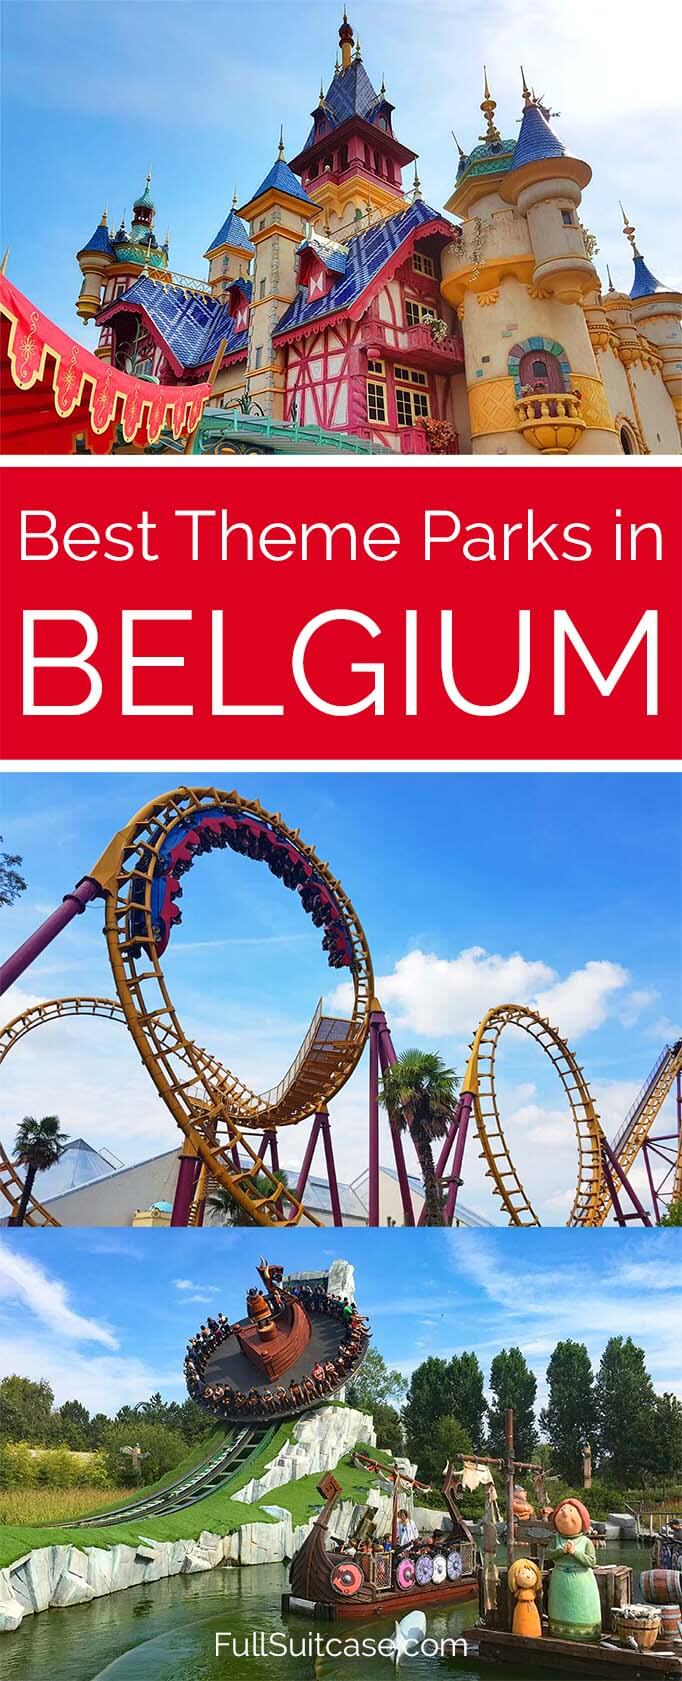 Complete list of the very best theme parks in Belgium- amusement parks, best rides, animal parks and more..